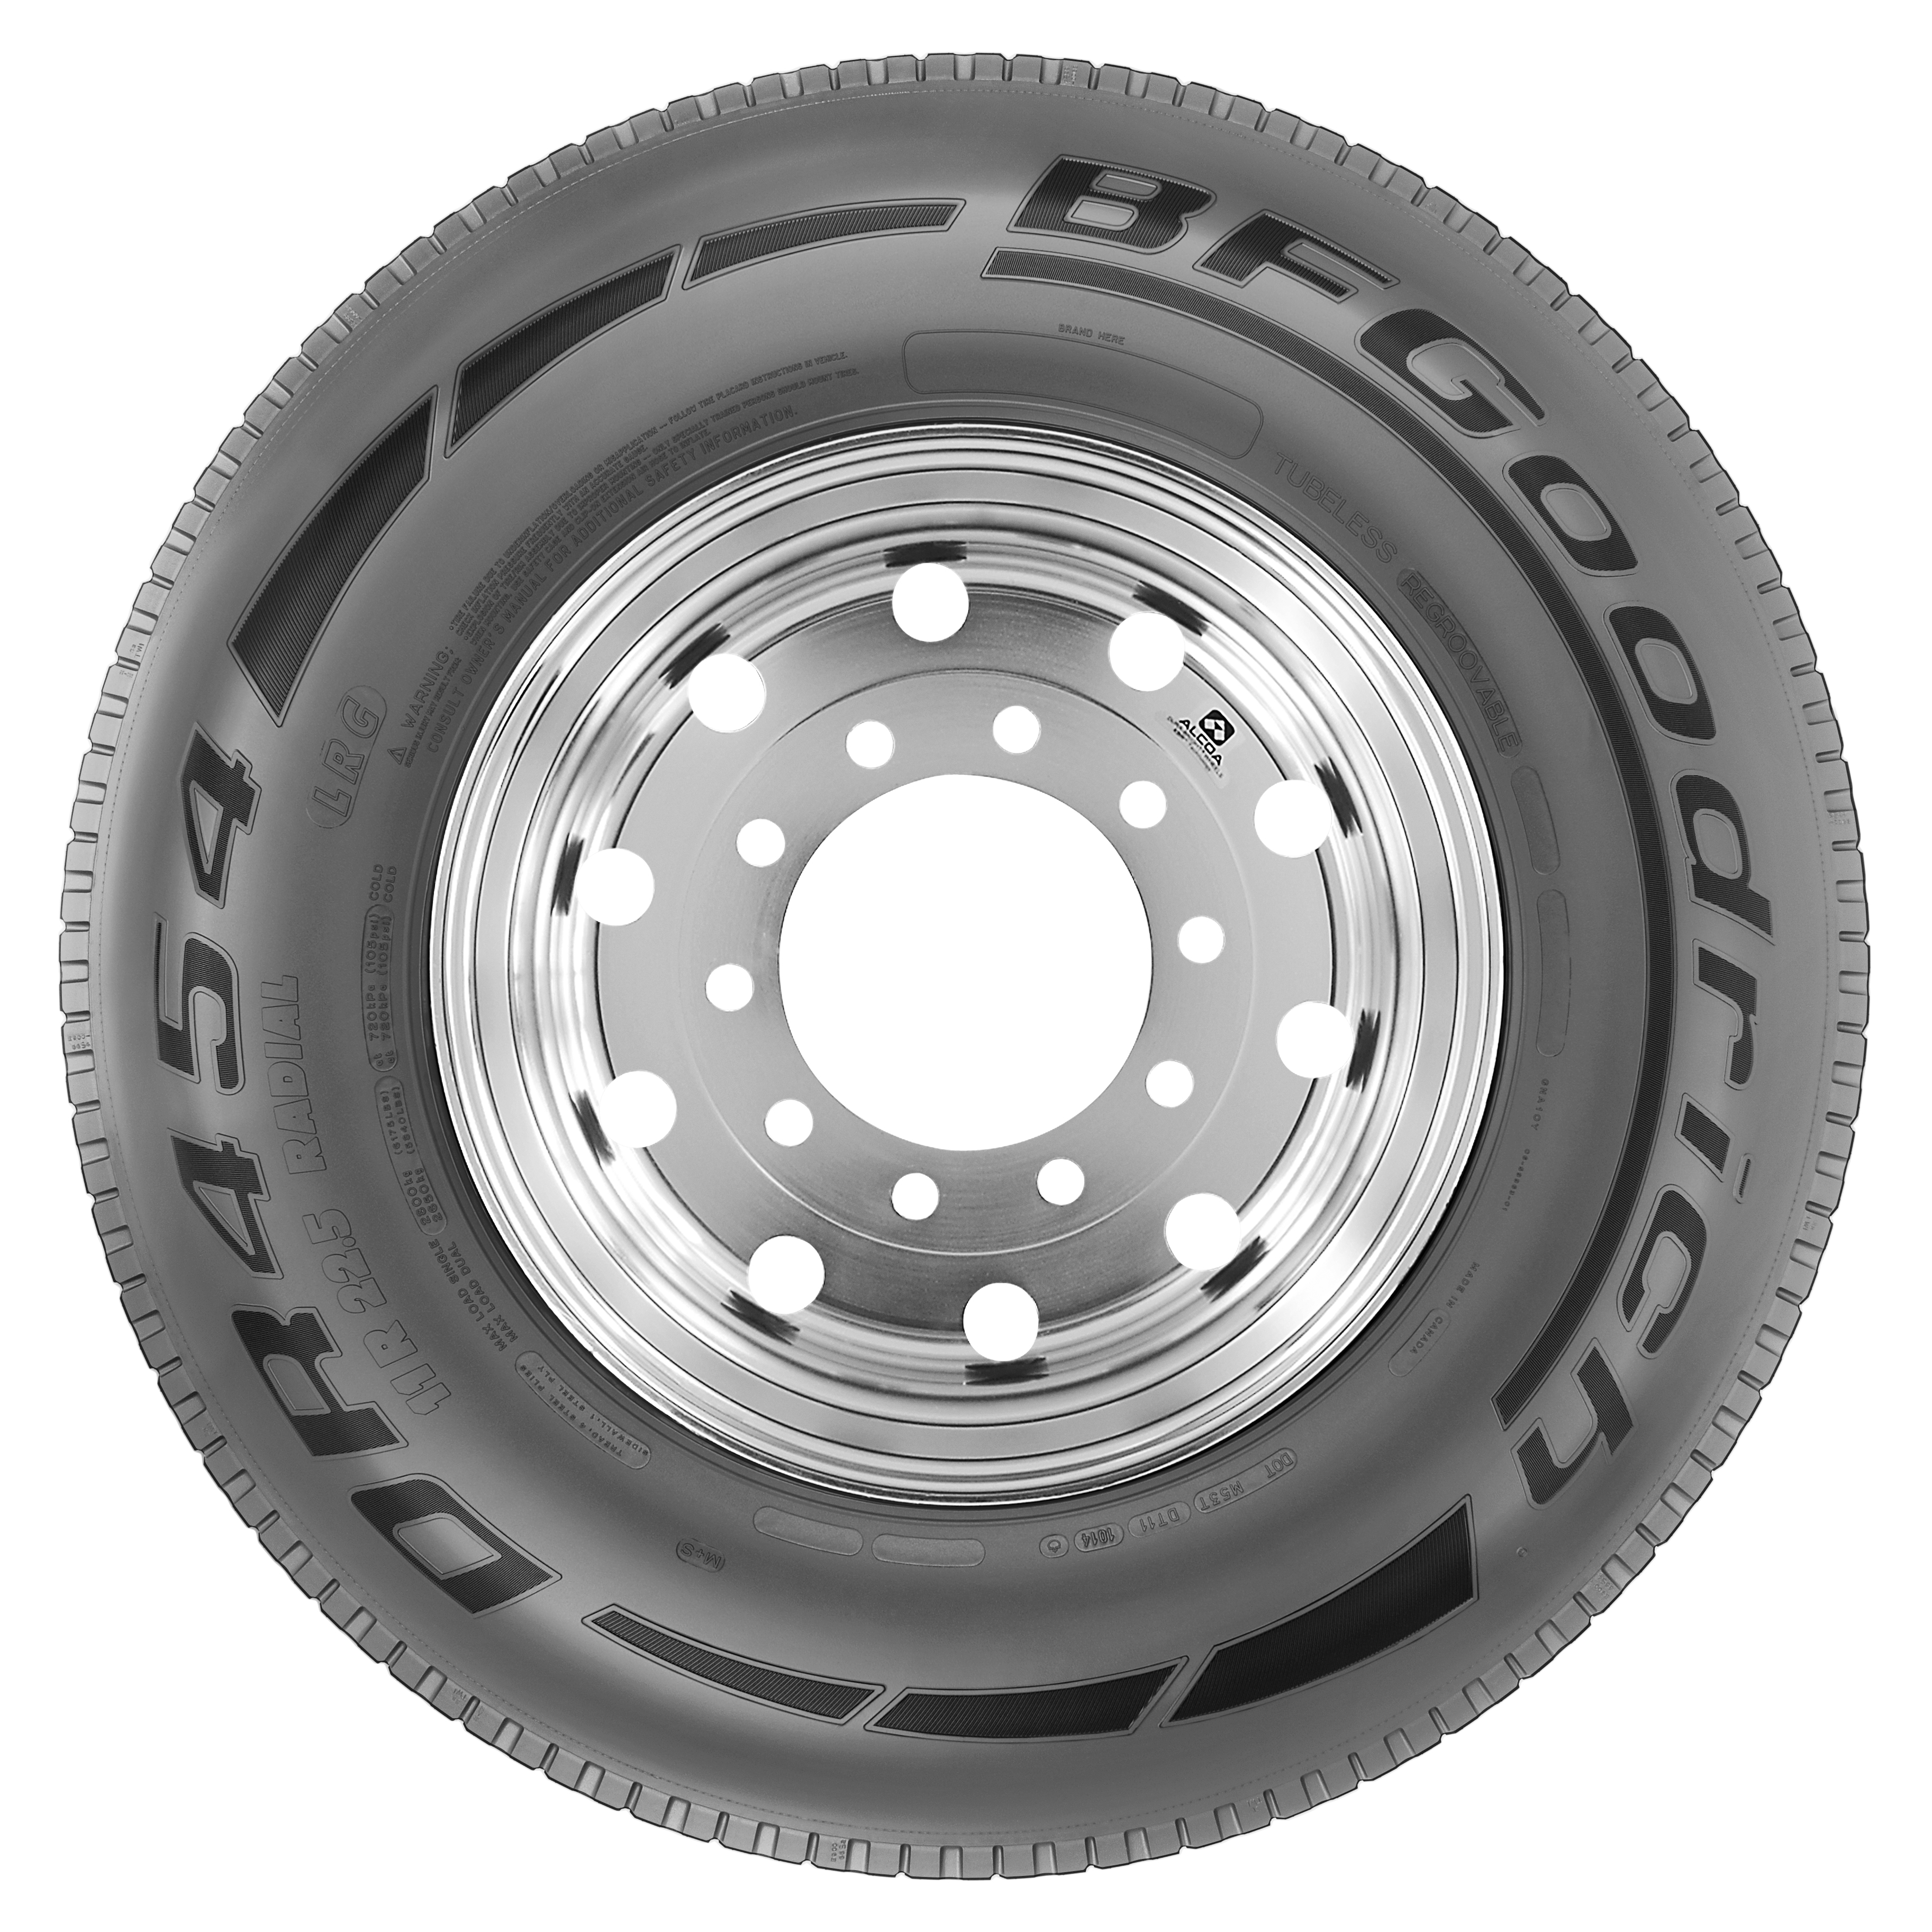 New Fuel-Effecient BFG DR454 Drive Tire